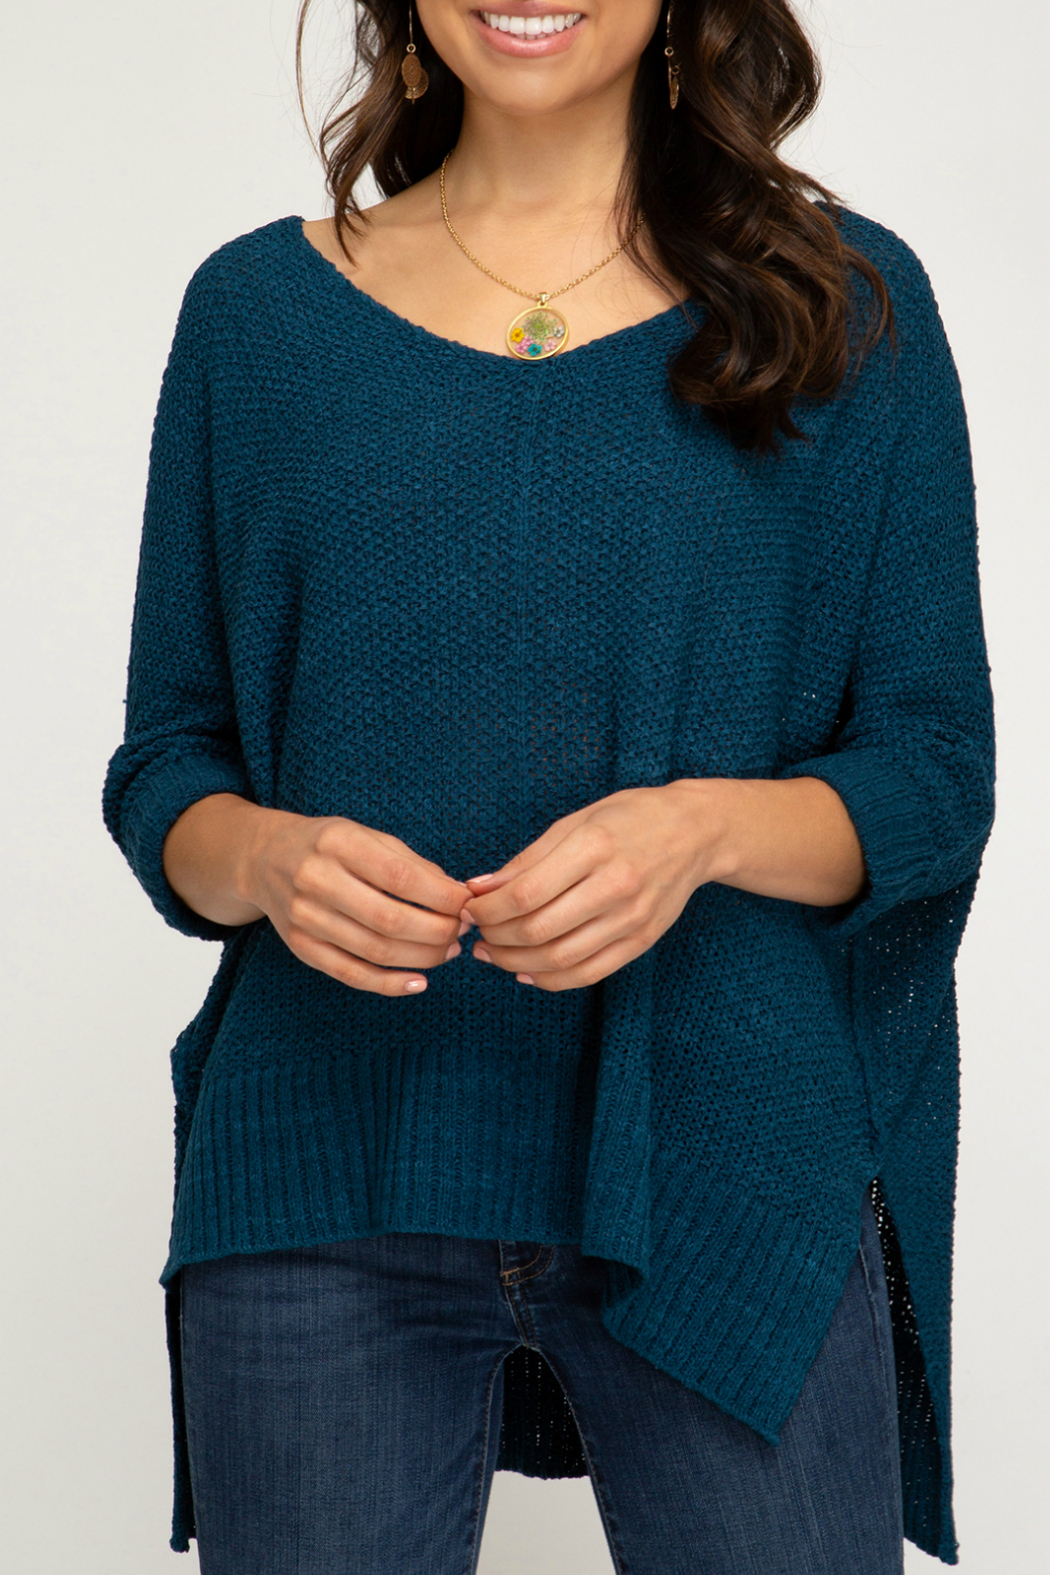 She + Sky 3/4 SLEEVE HI LOW SWEATER WITH FOLDED CUFFS - Front Cropped Image